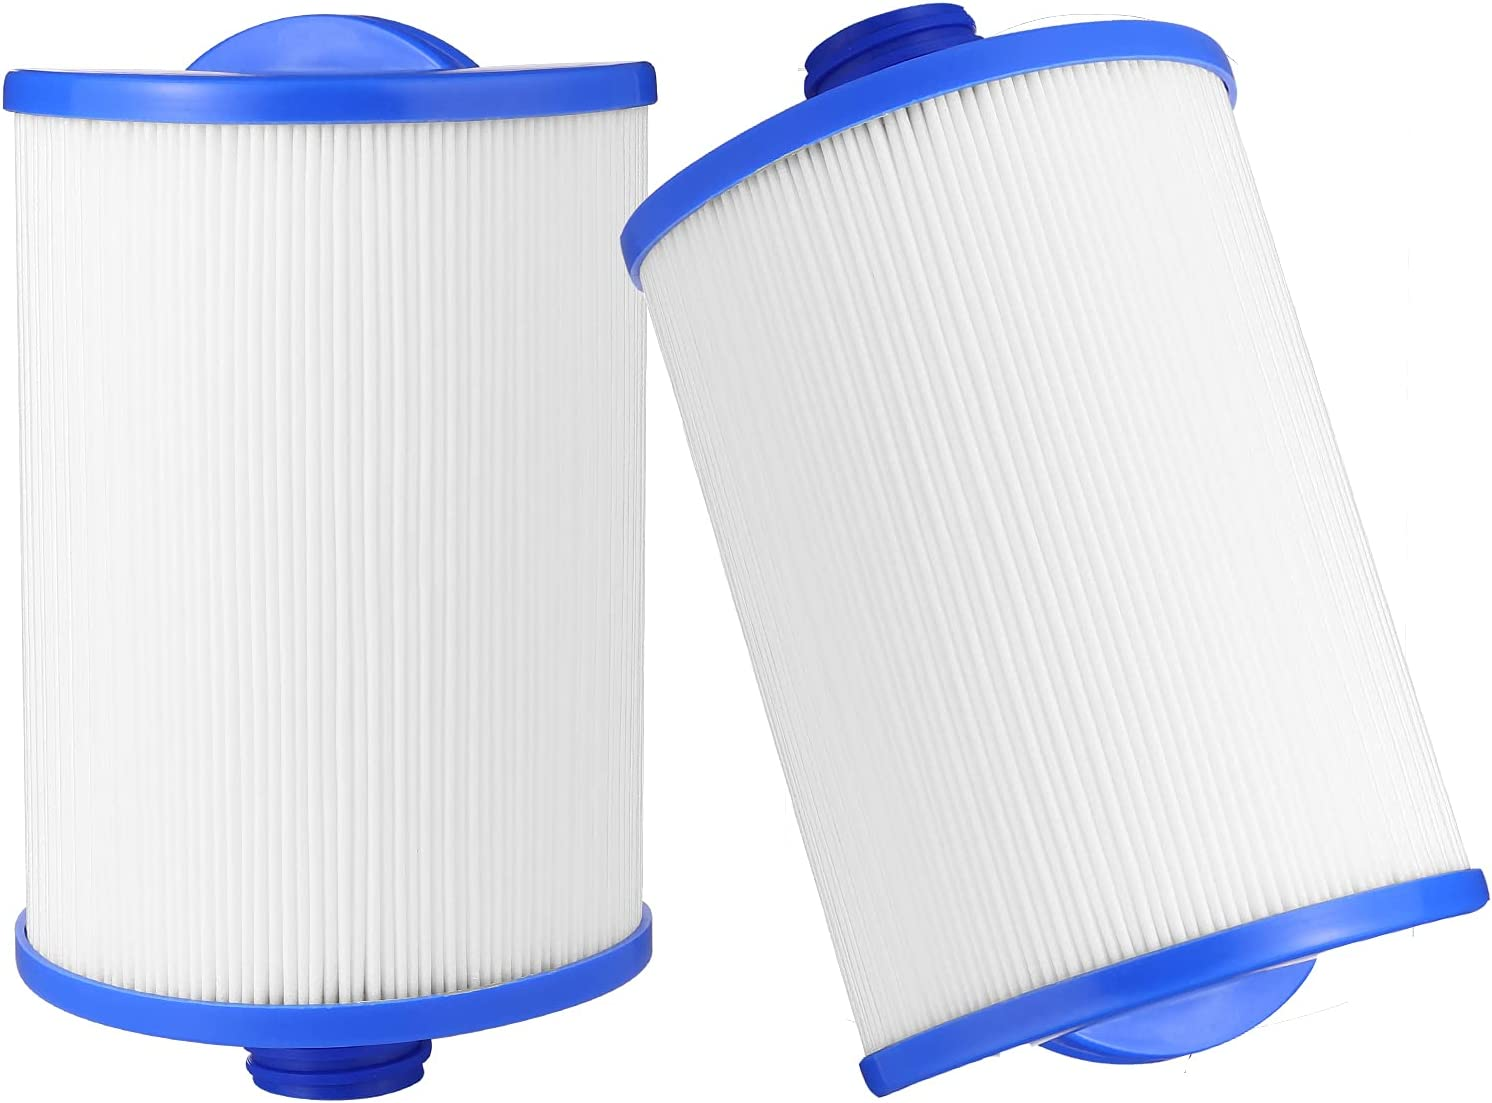 XUYUAN Excellent PWW50 Spa Filter Replacement Unicel 6CH-940 NEW before selling ☆ Waterway for